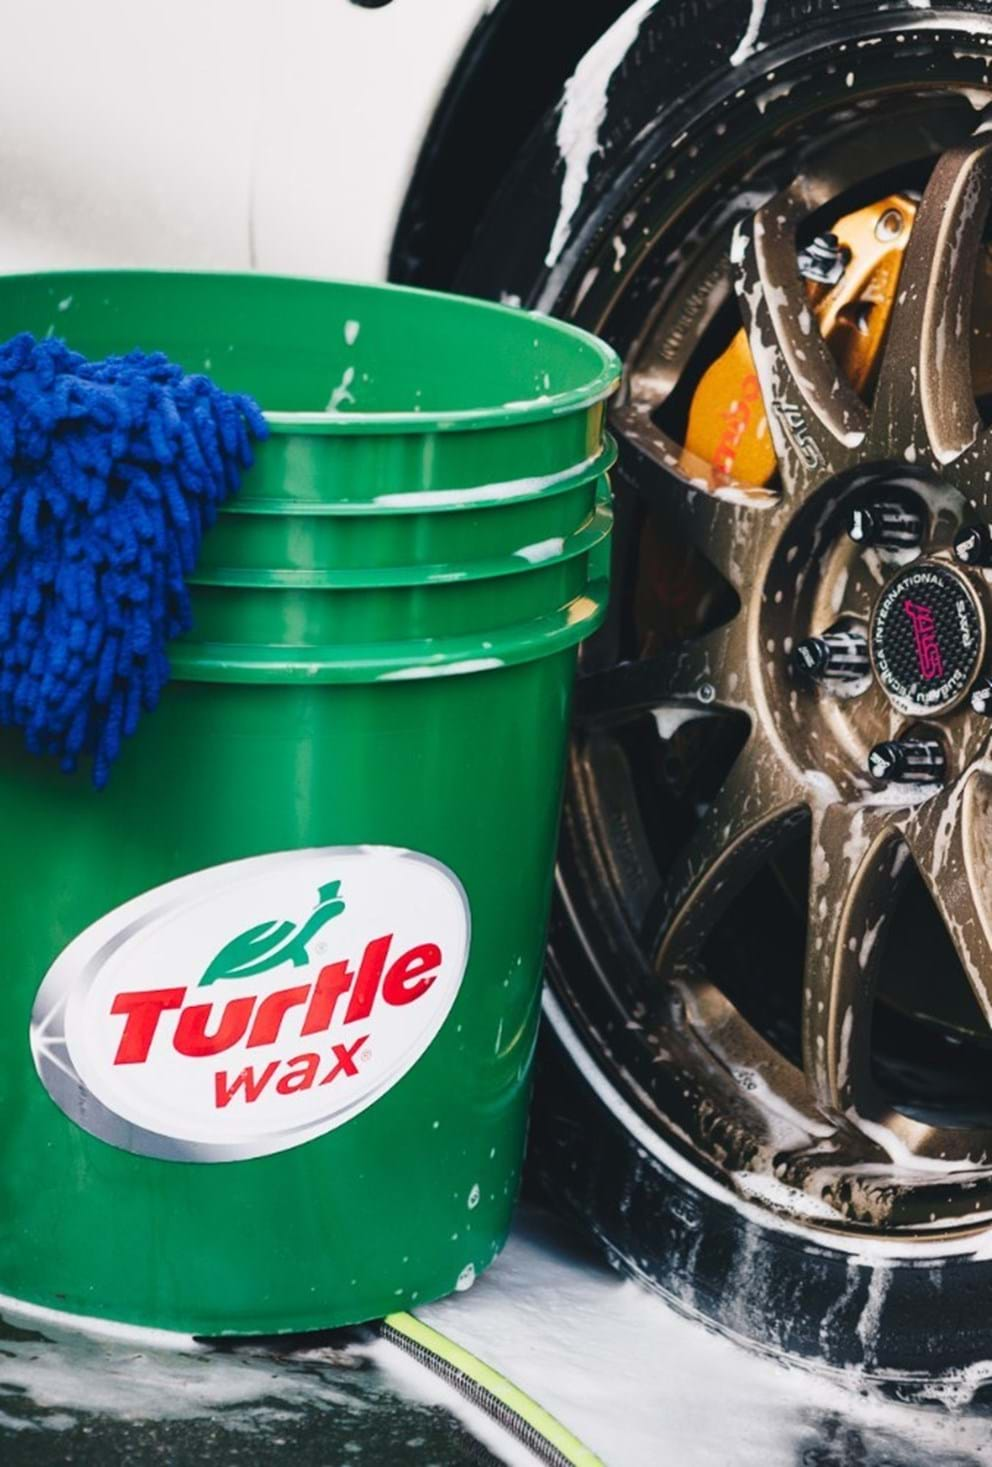 auto detailing guide - turtle wax - tire clean